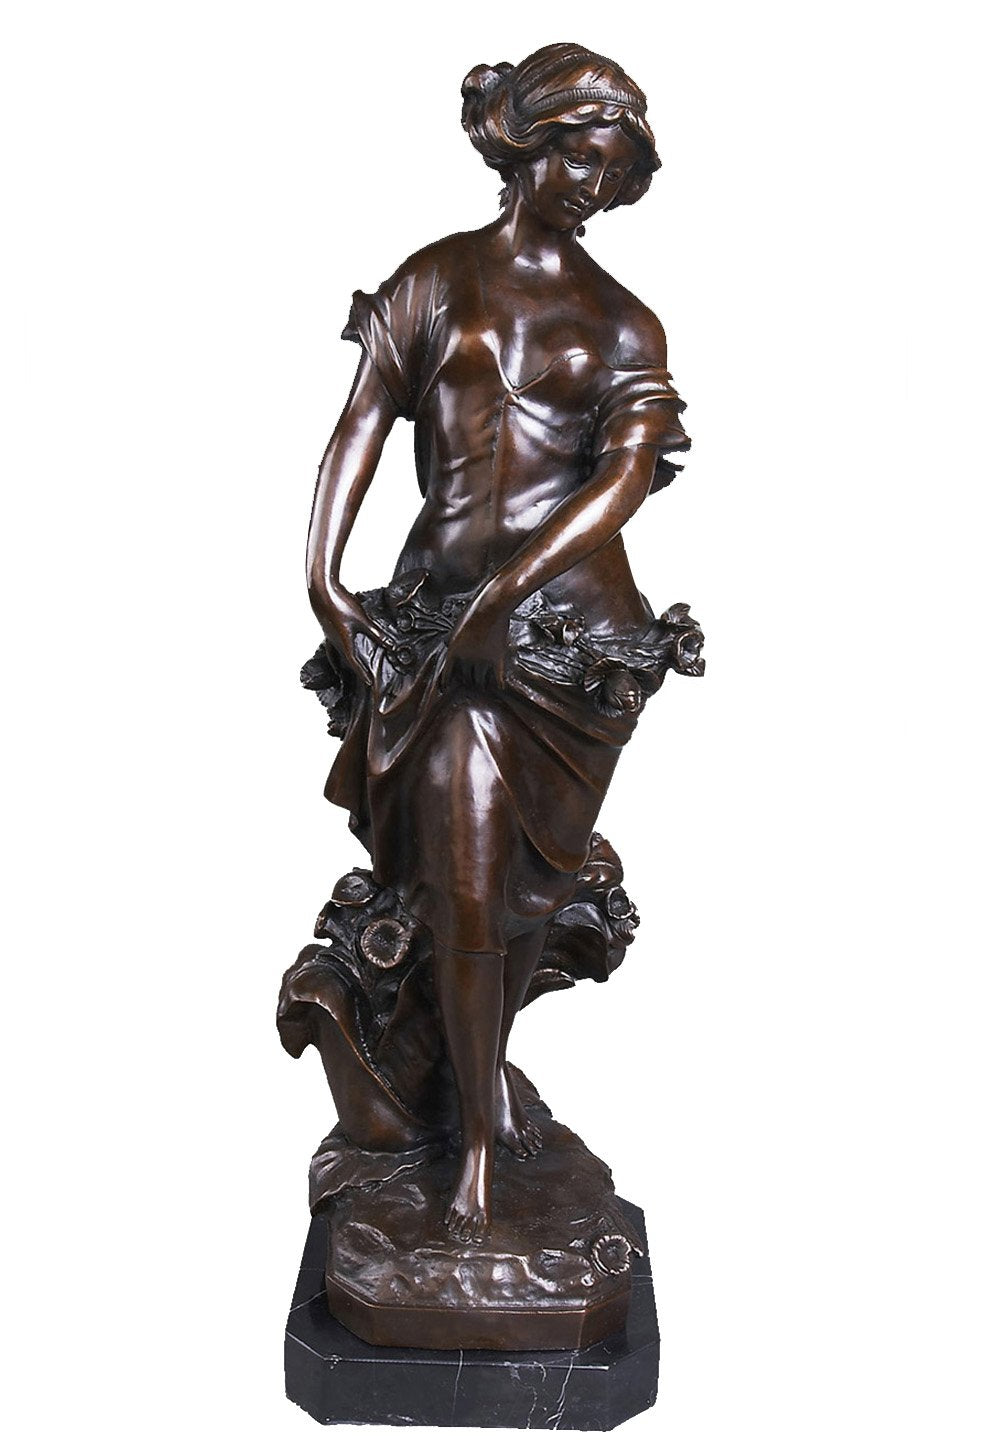 TPY-040 bronze sculpture